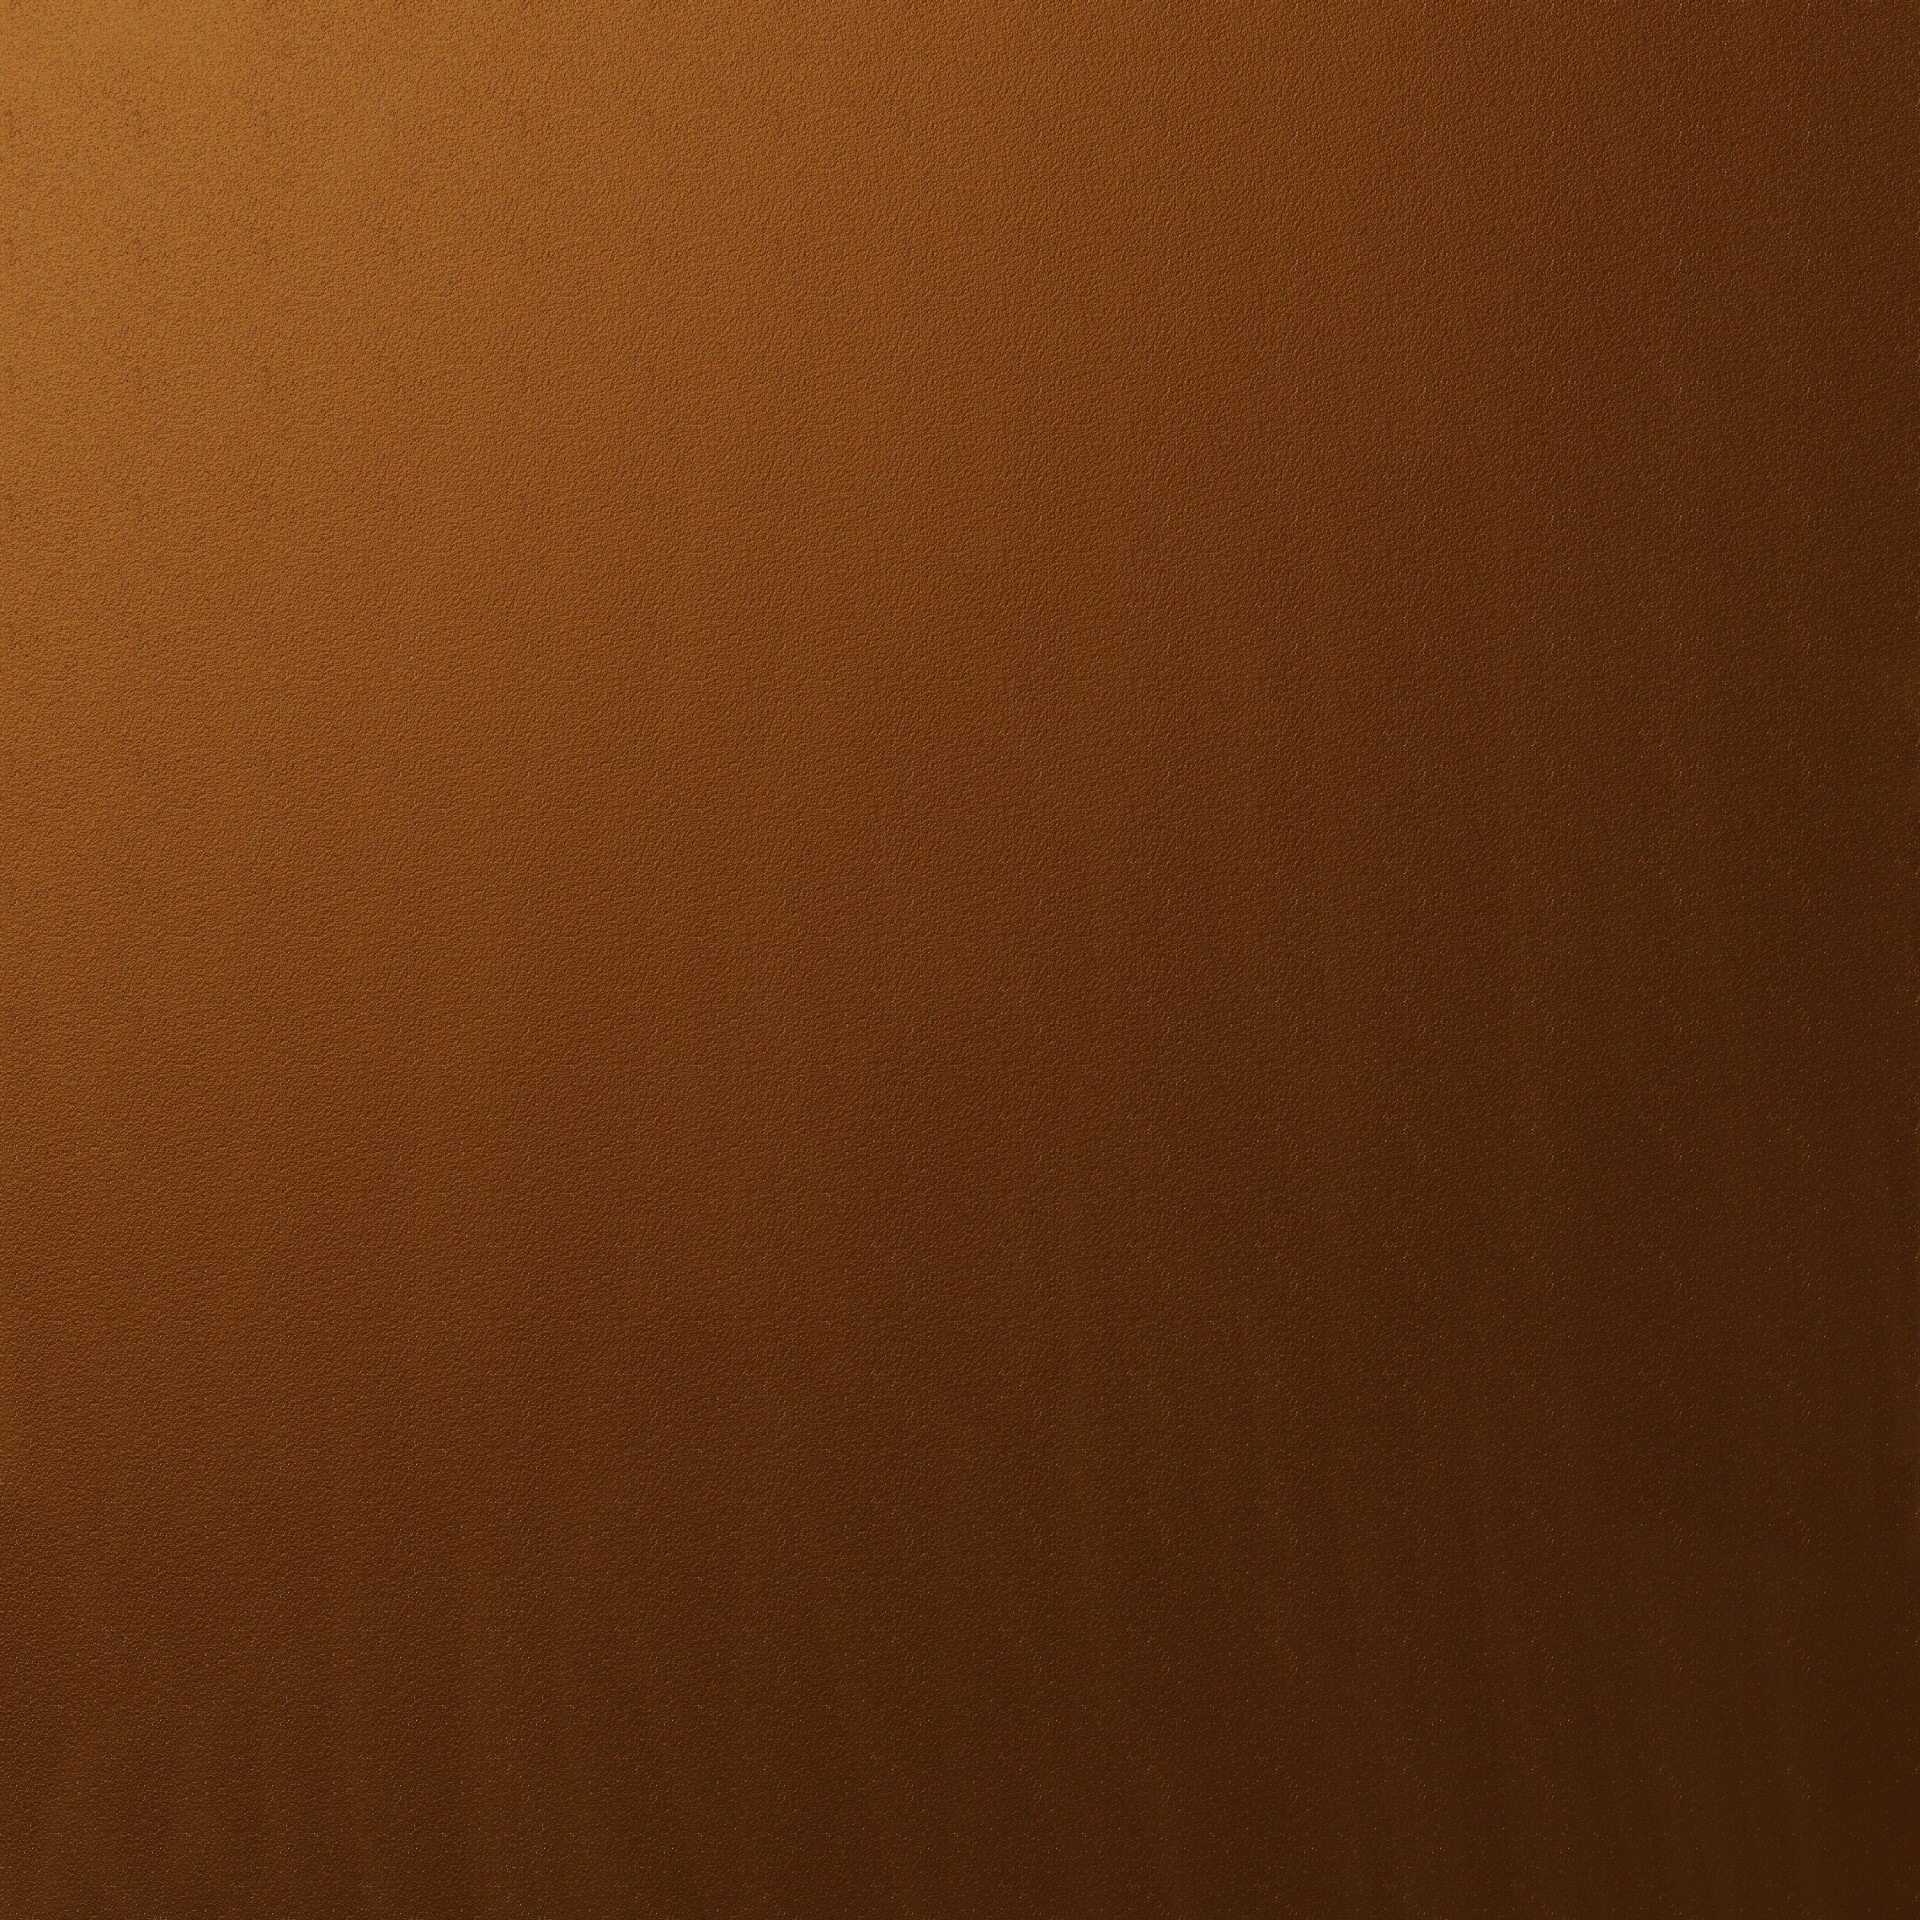 Mobil Hd Wallpaper 42 Bronze Textures Photoshop Textures Freecreatives